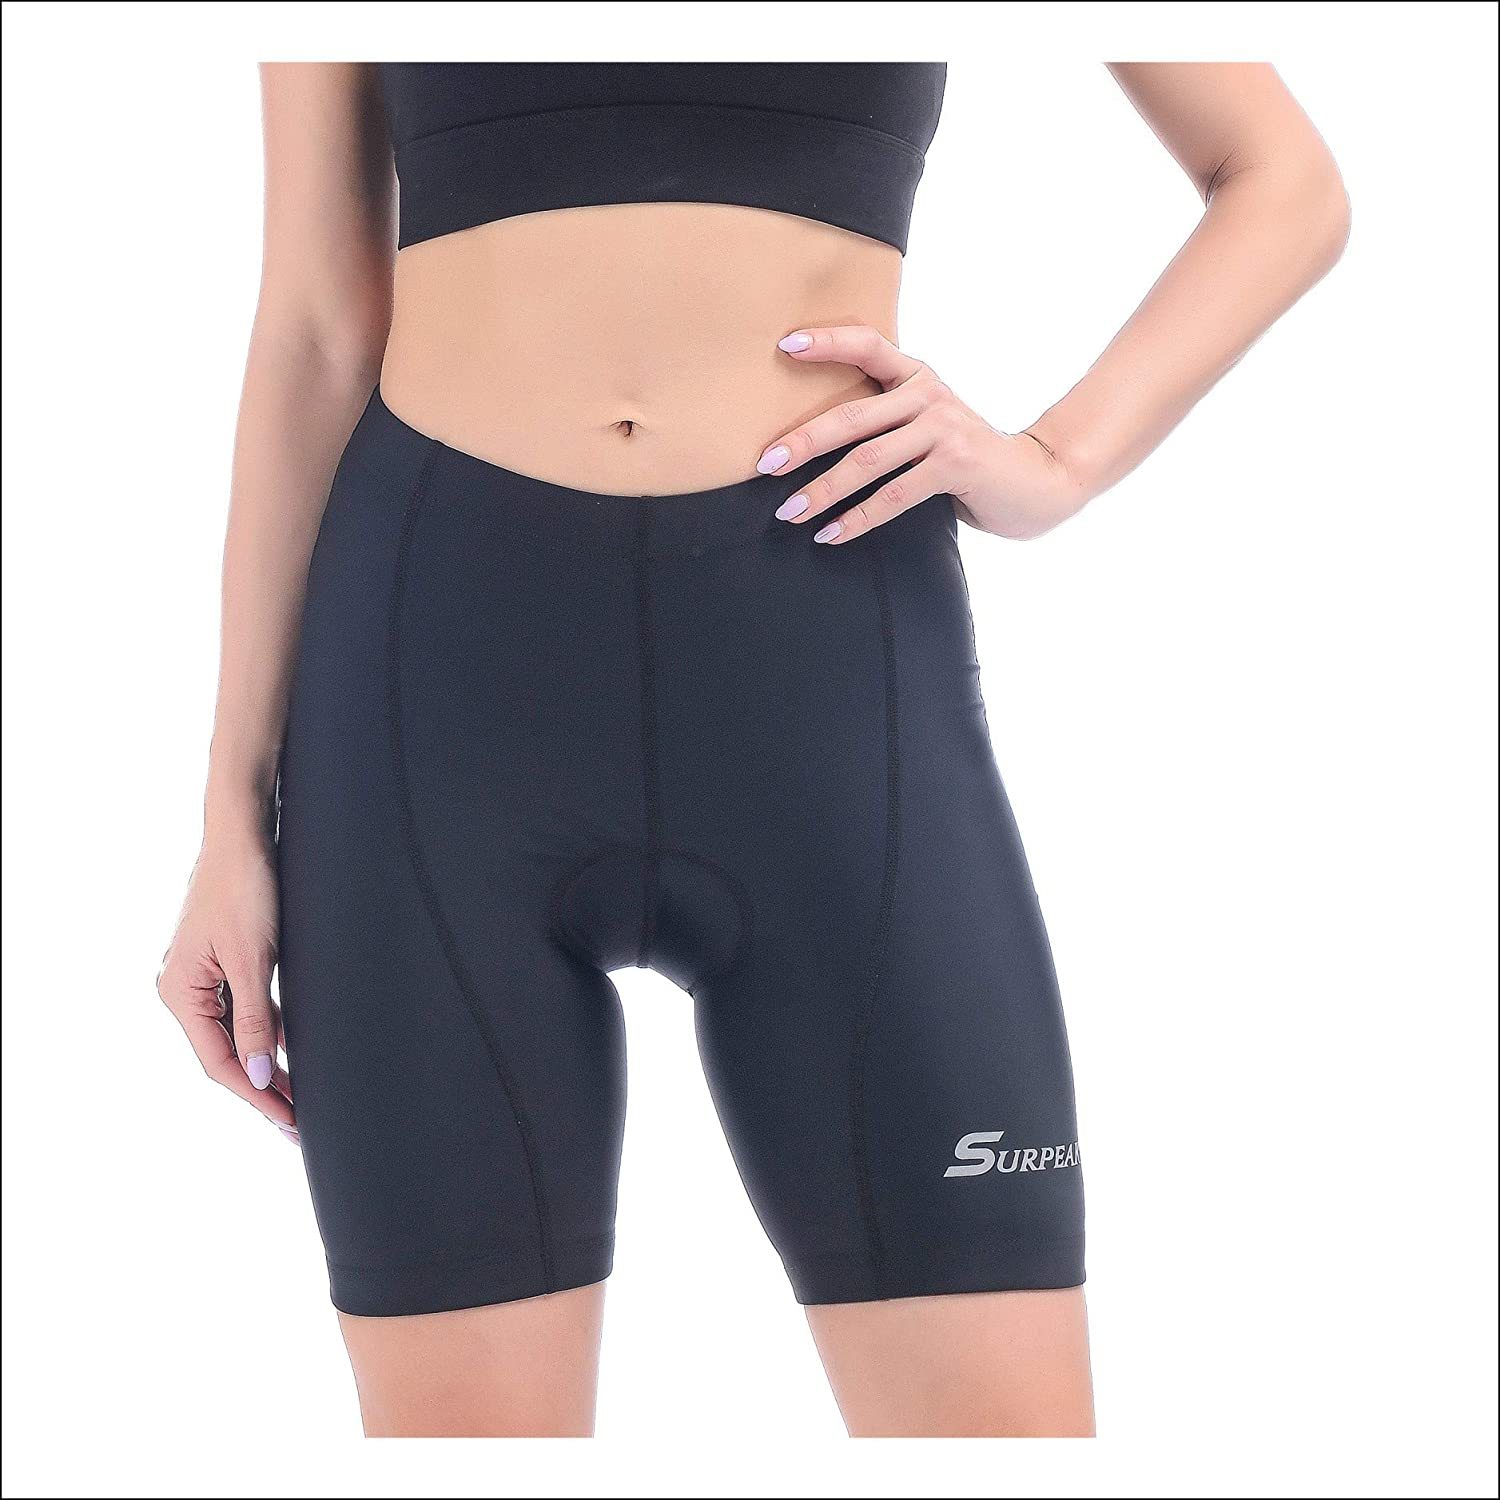 Women Cycling Bike Shorts Padded Breathable Bicycle Riding Tight Shorts with 3D Pad